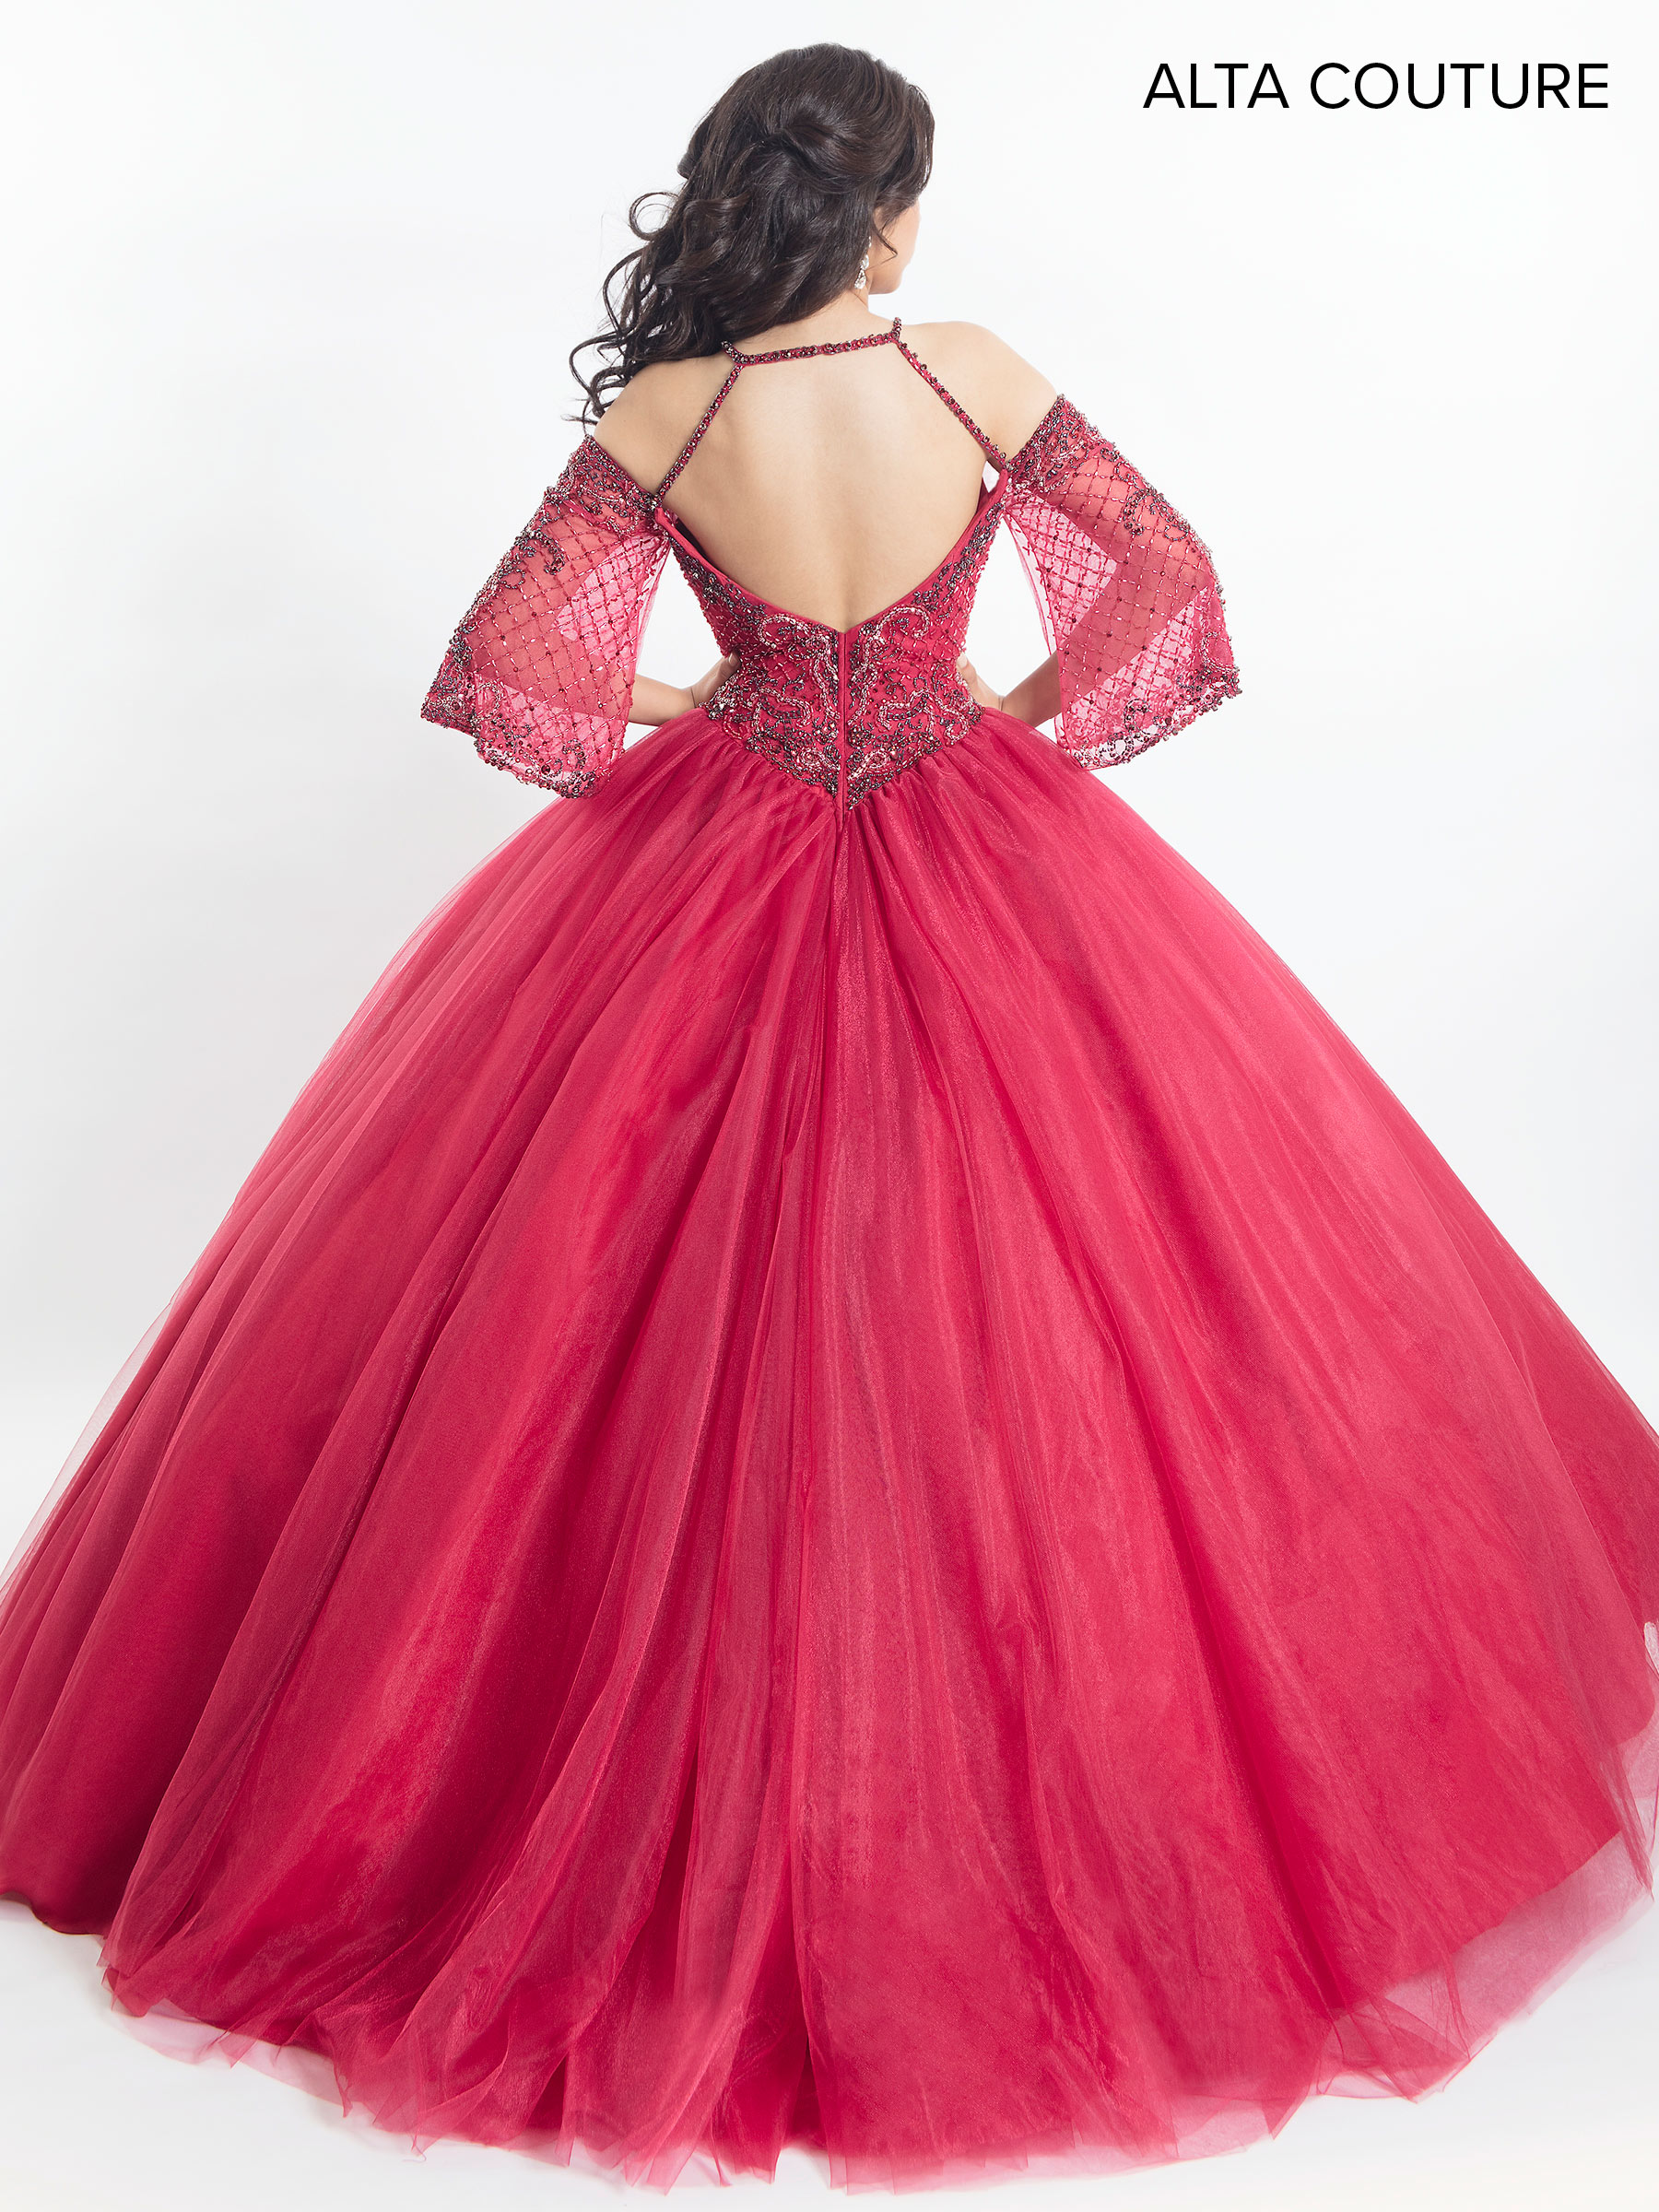 Quinceanera Couture Dresses | Alta Couture | Style - MQ3011